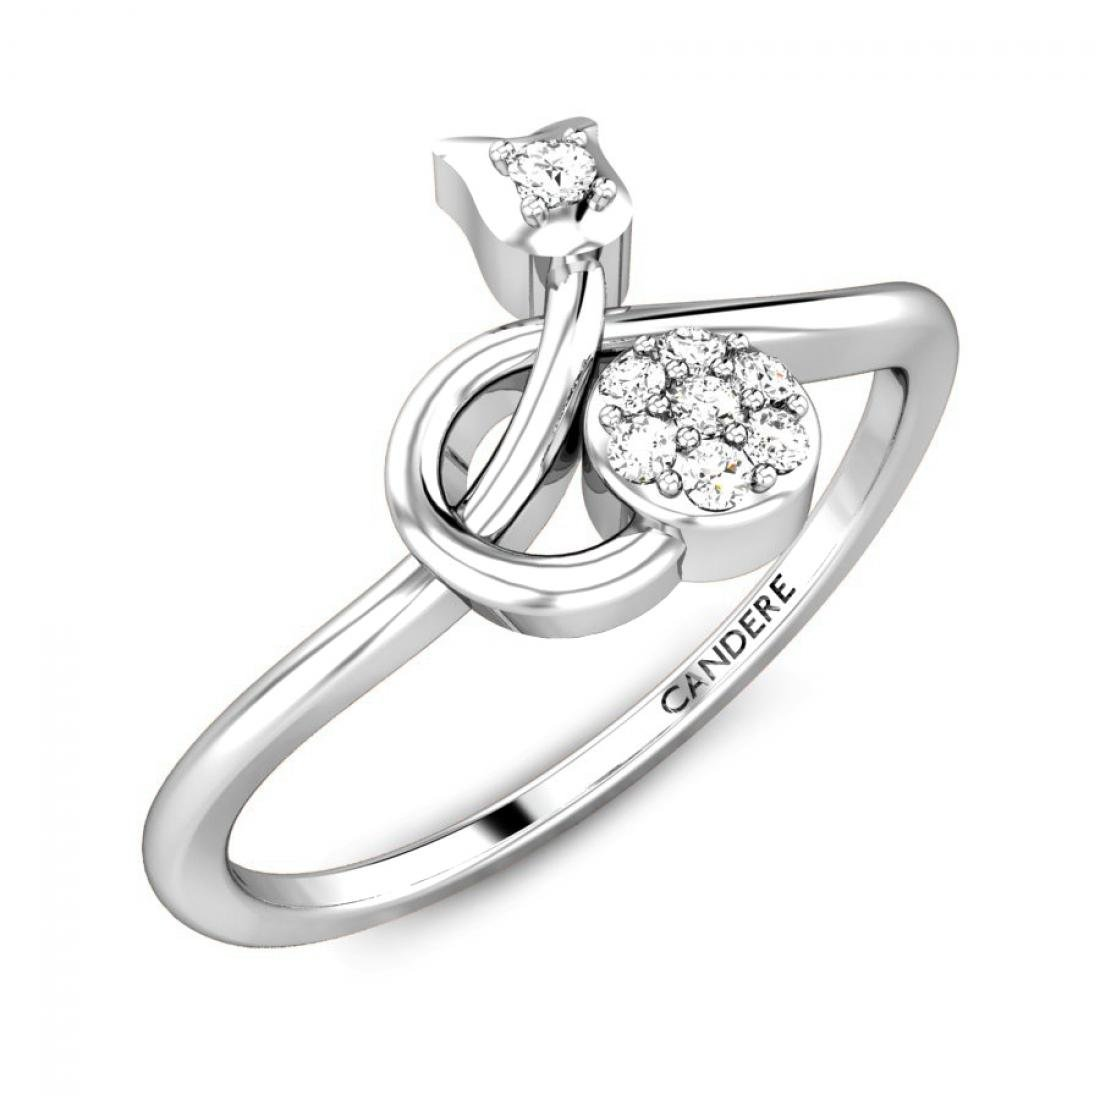 Candere Forever Love Collection 0.06 ctw Round-Cut Diamond Promise Ring for Women in 14K Solid Gold (IGI Certified)